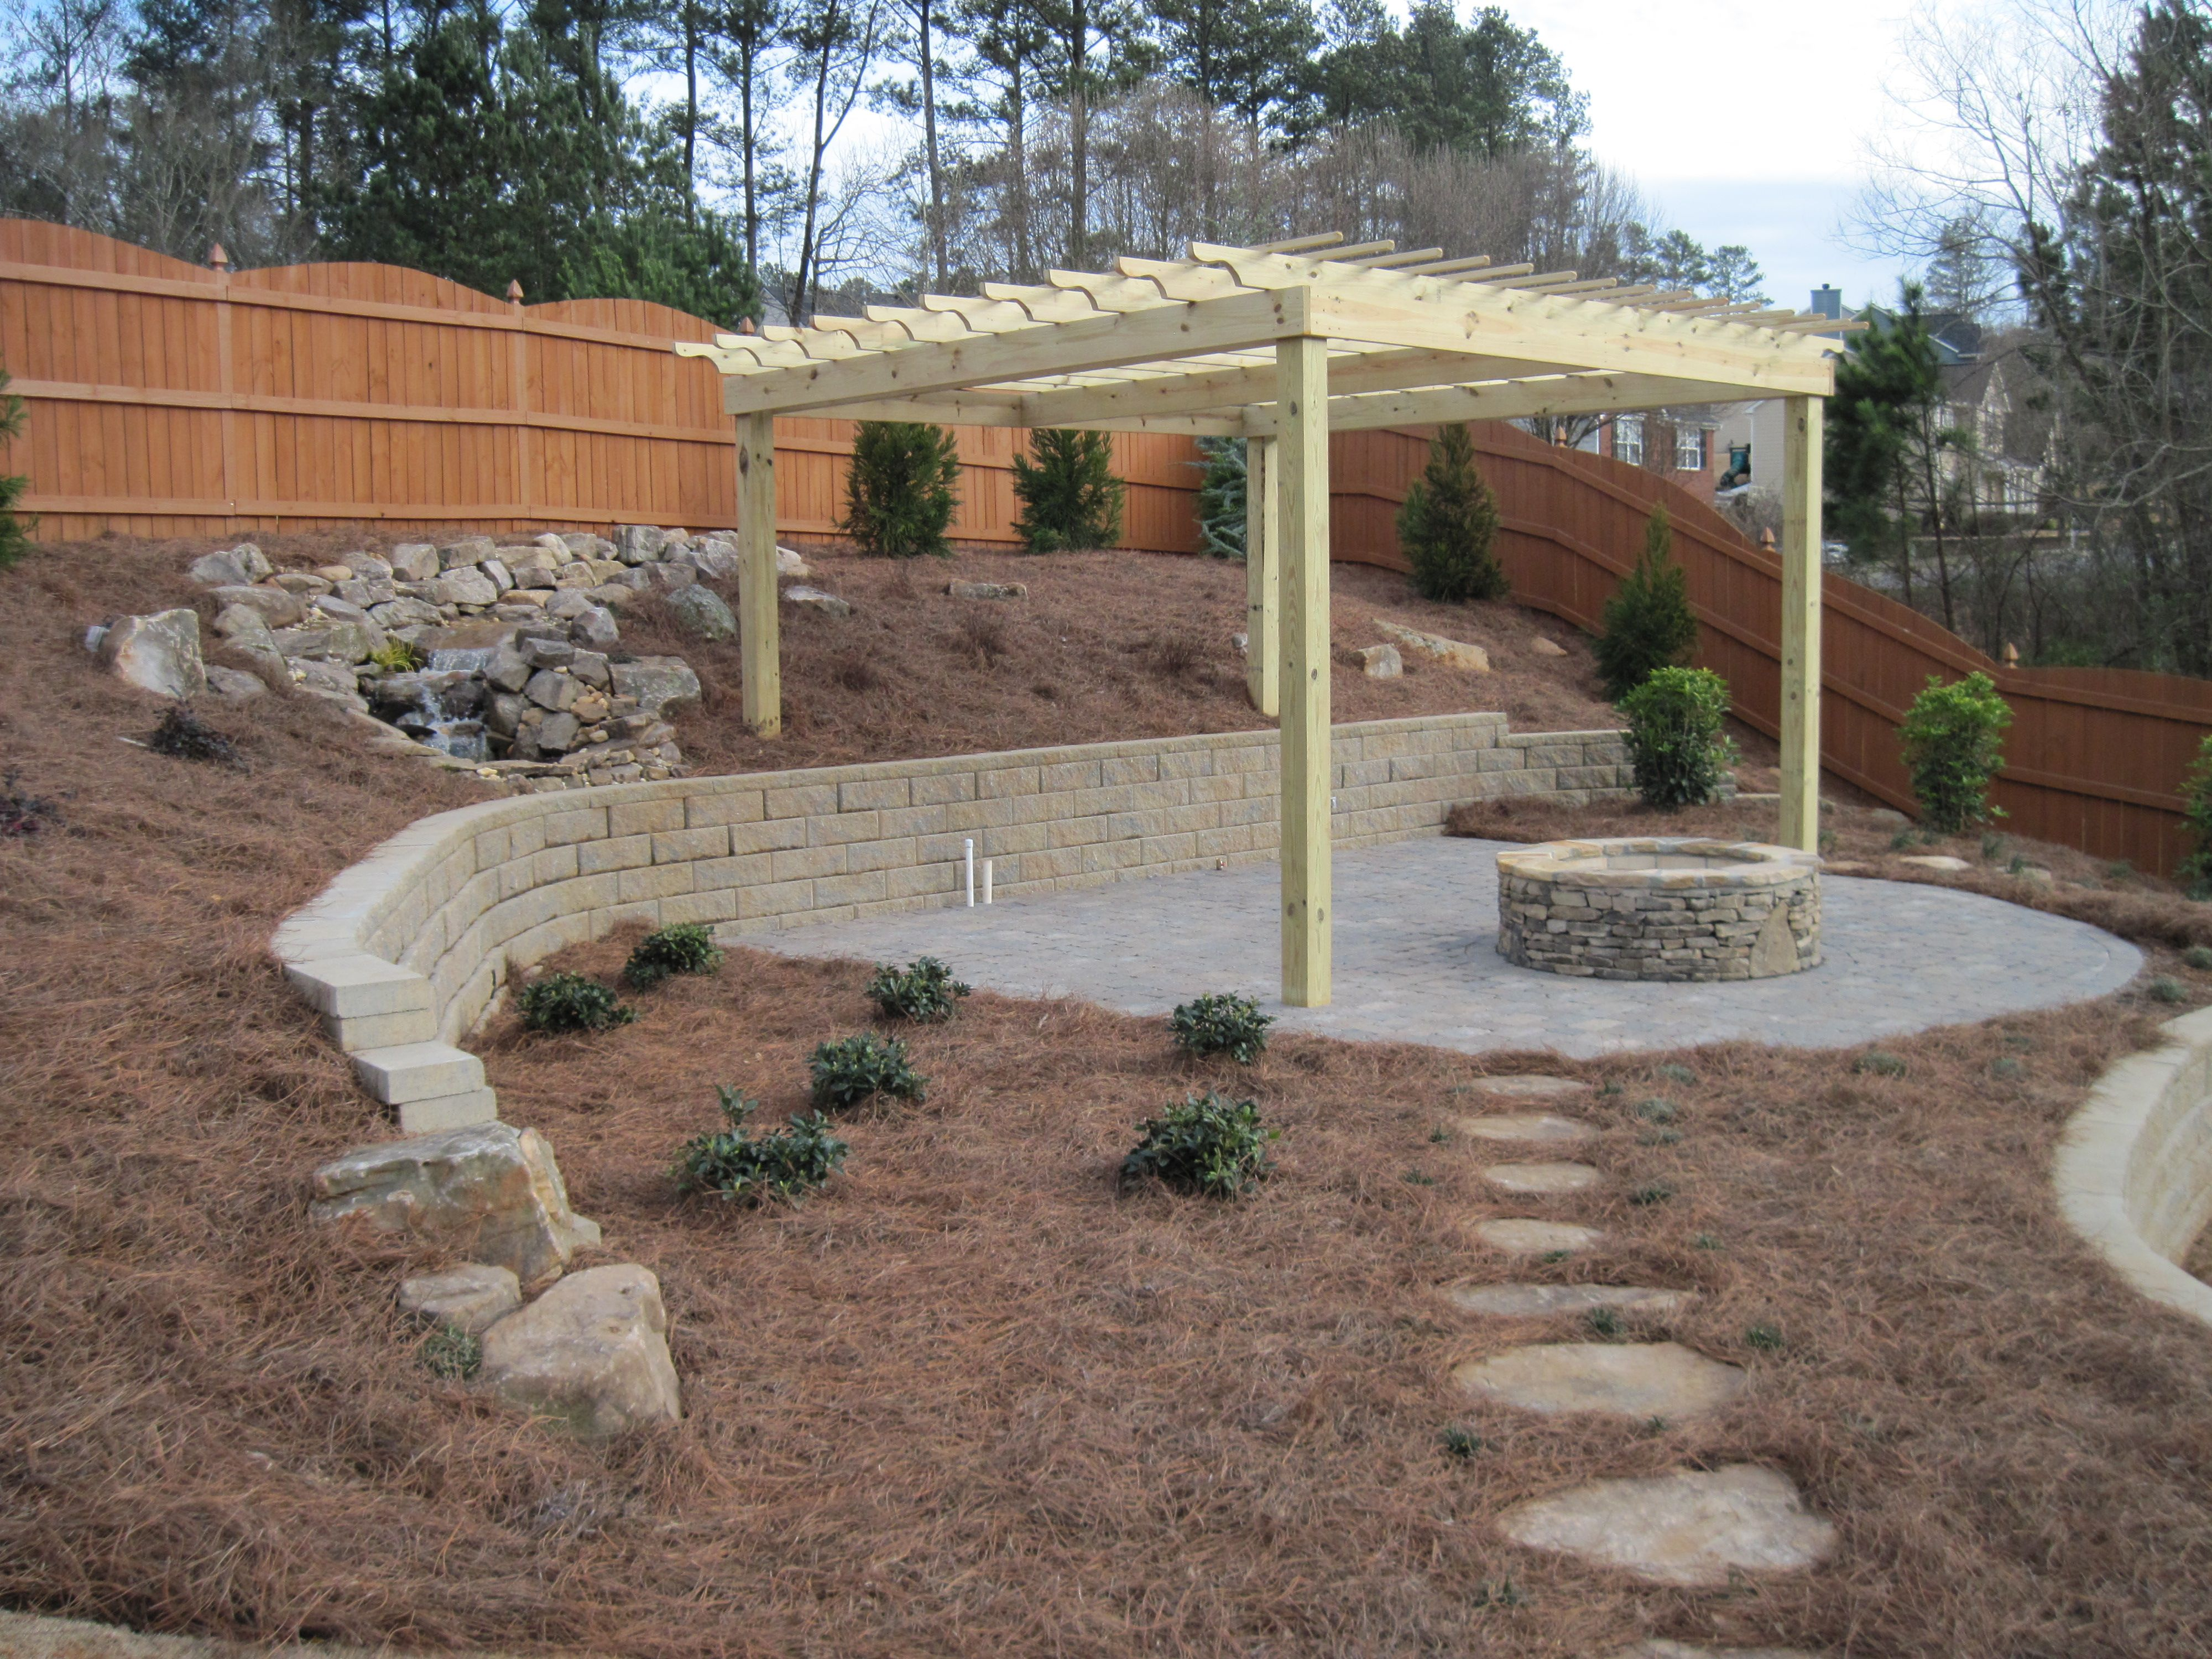 Anchor diamond retaining wall block wooden pergola paver for Patio and retaining wall ideas